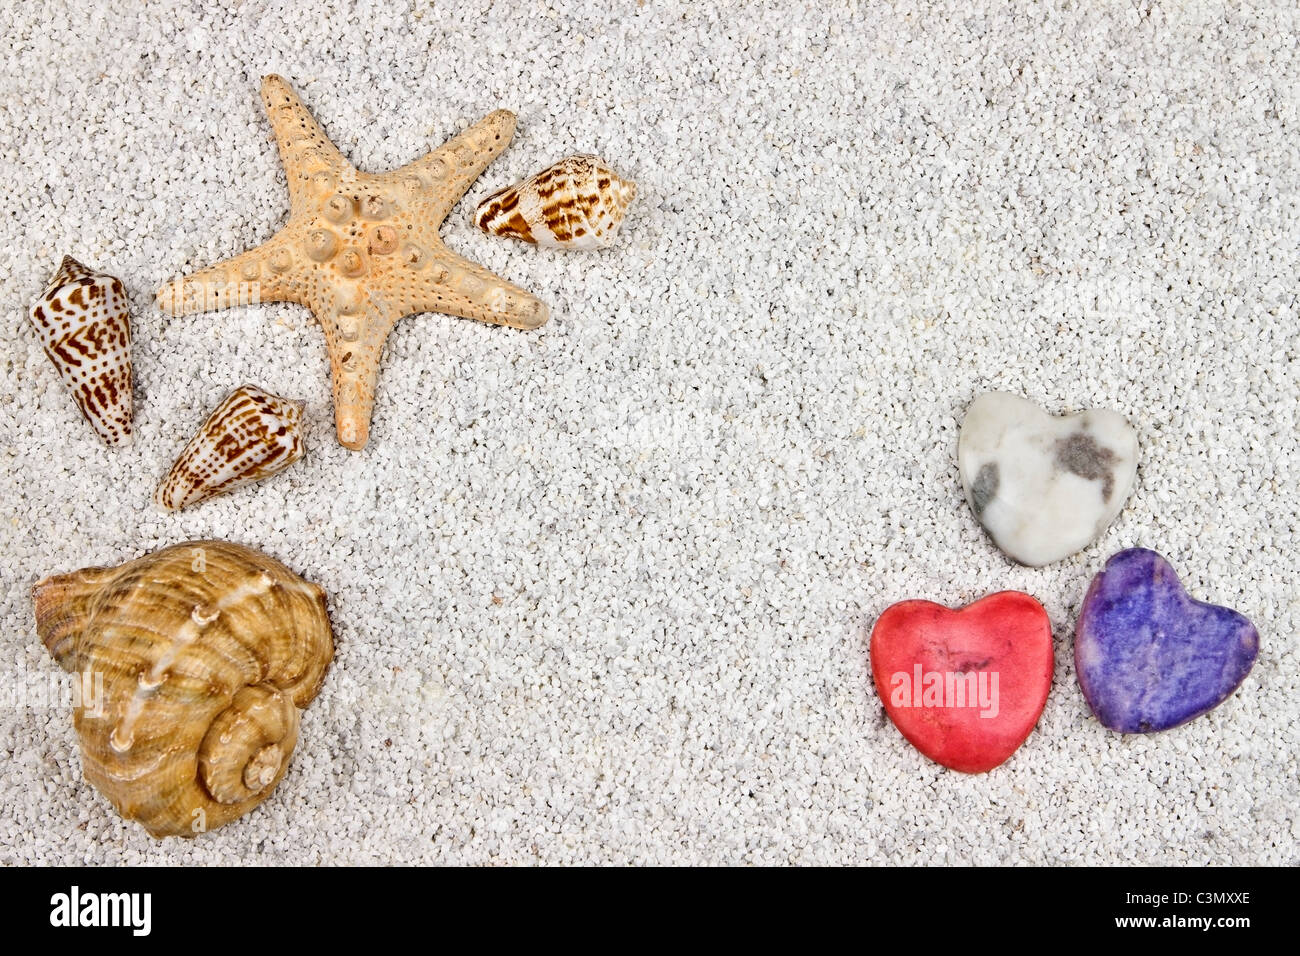 a seastar and several shells in white sand with three hearts - Stock Image